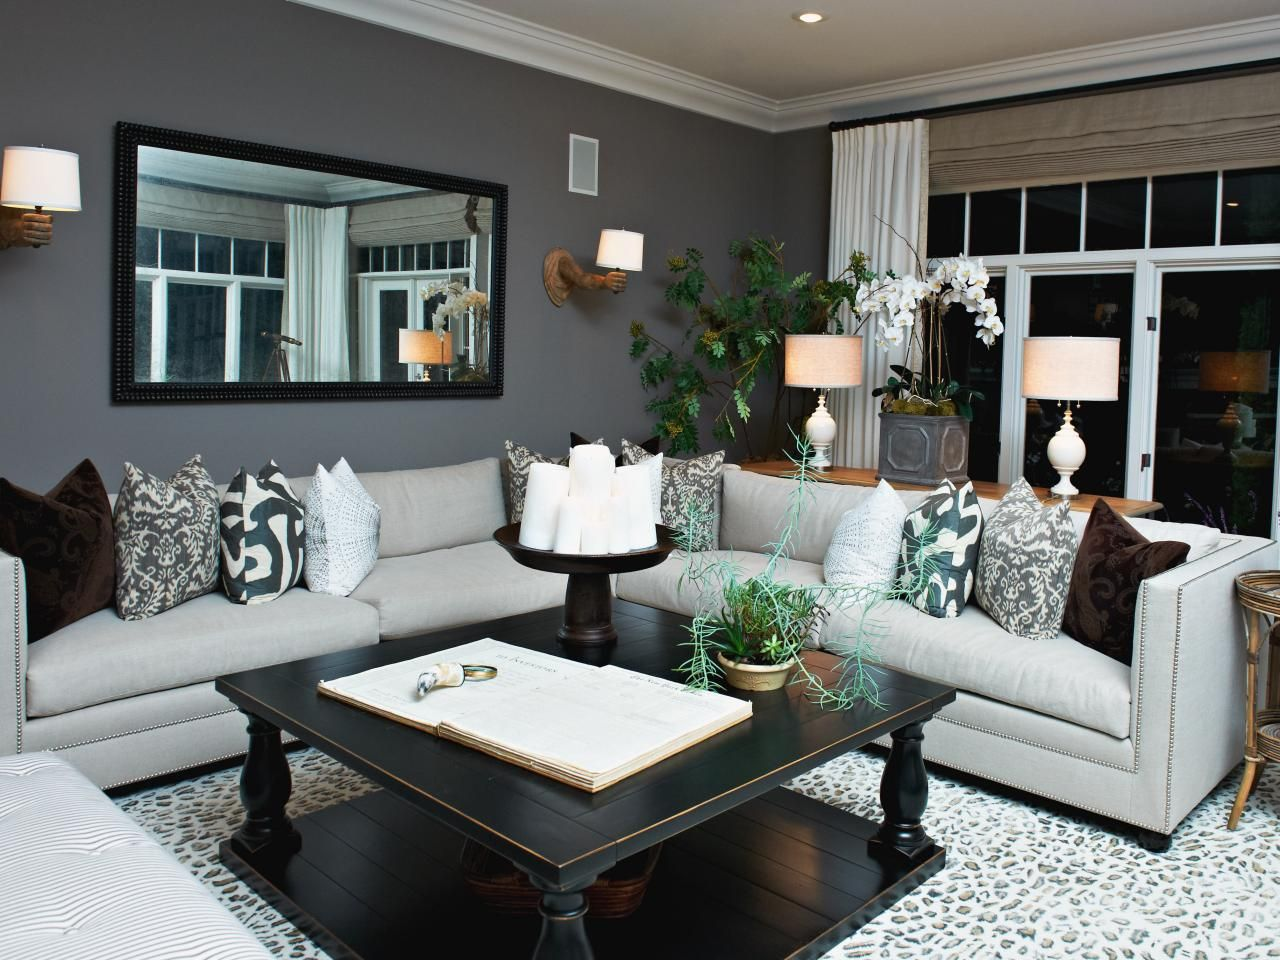 best 25+ gray living rooms ideas on pinterest | gray couch decor